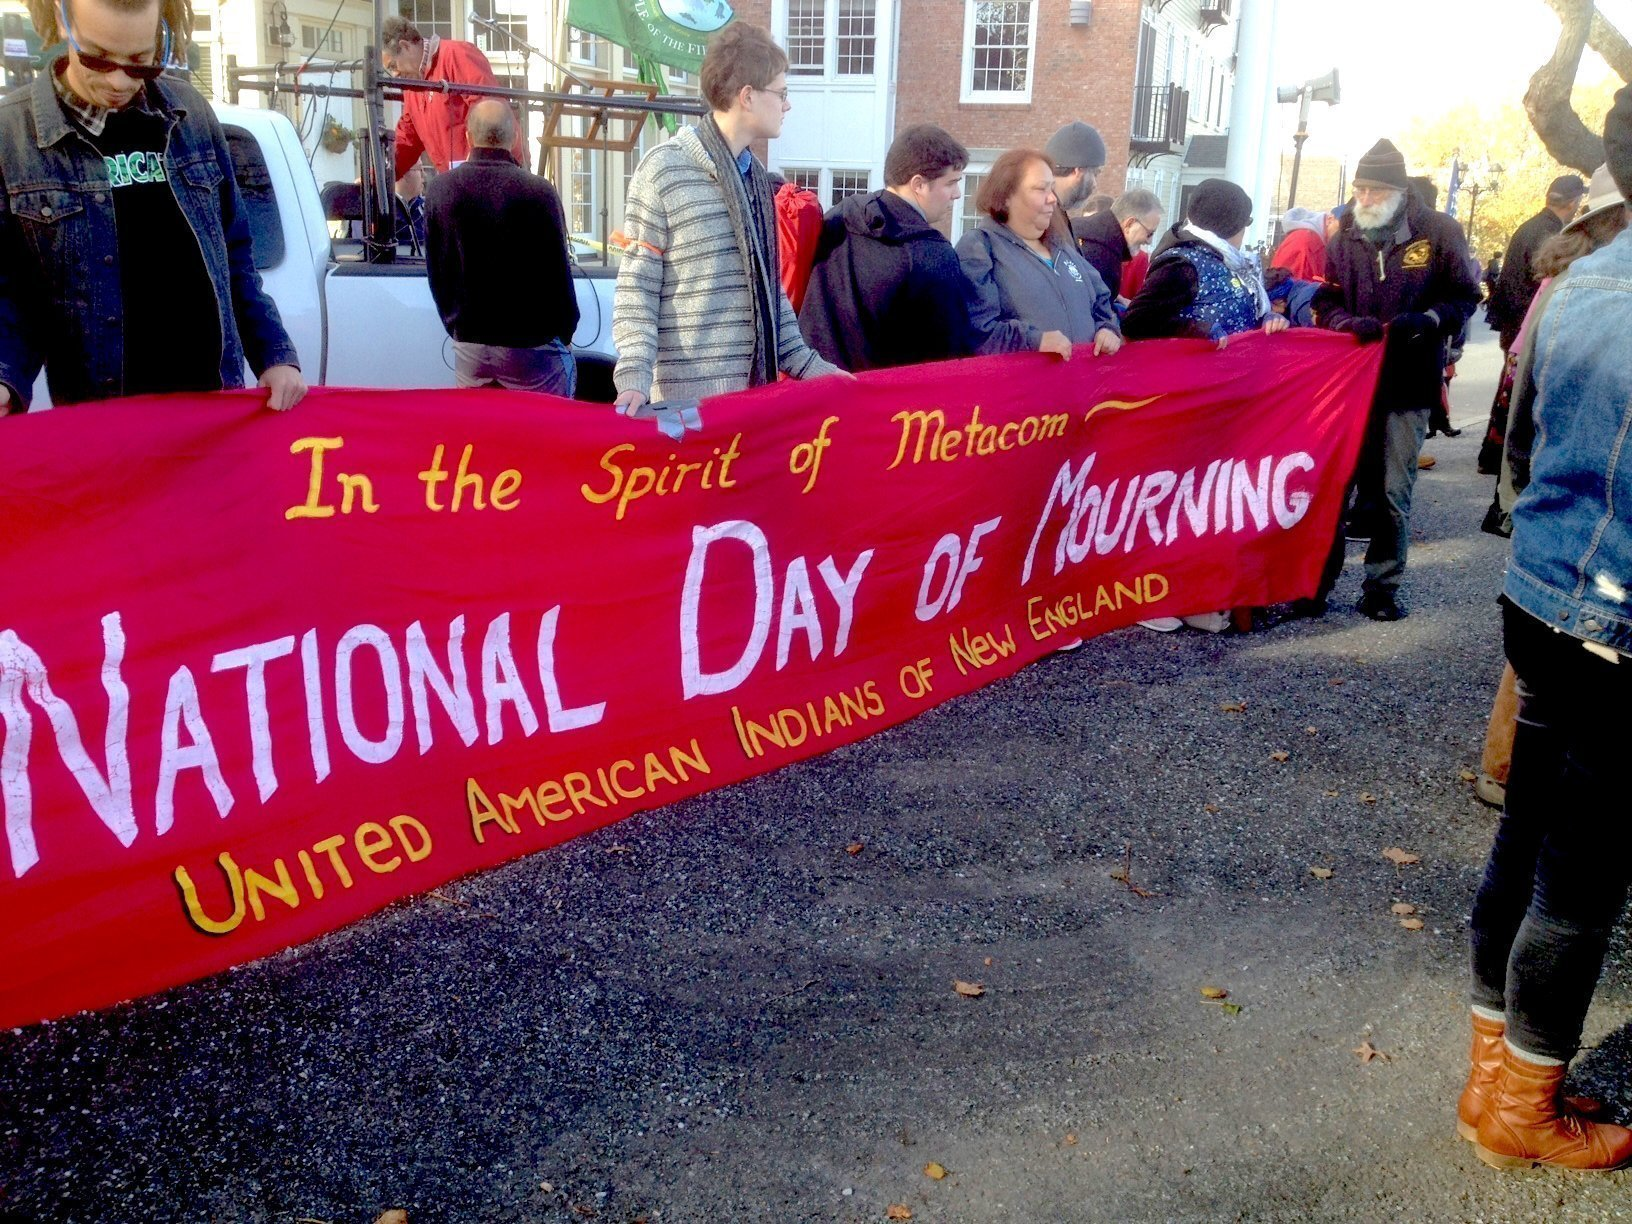 Thanksgiving is Native American Heritage Day and National Day of Mourning For Some